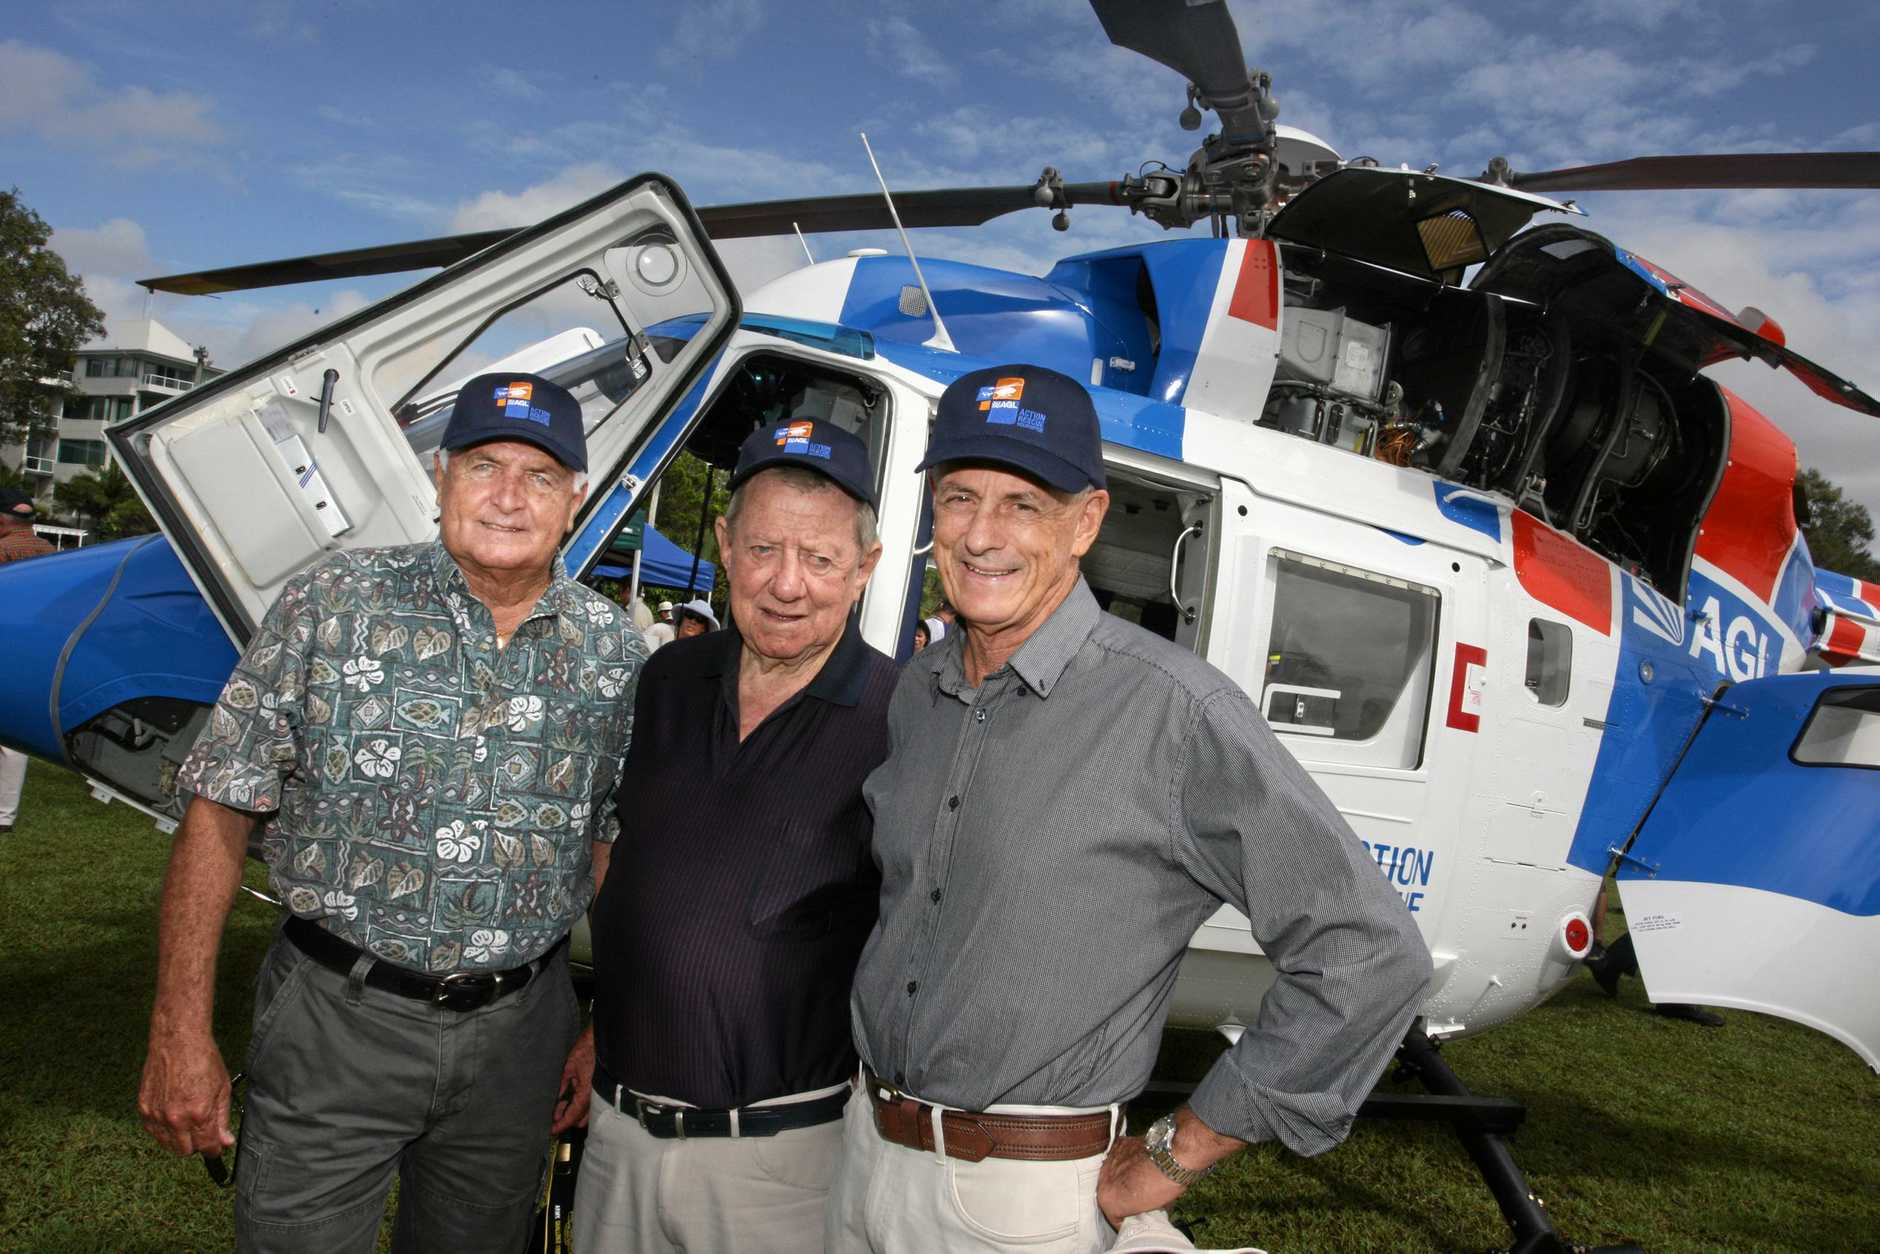 Foundation members Hayden Kenny, Roy Thompson, and Jim Campbell at the unveiling of the AGL Action Rescue helicopter at Cotton Tree Park.